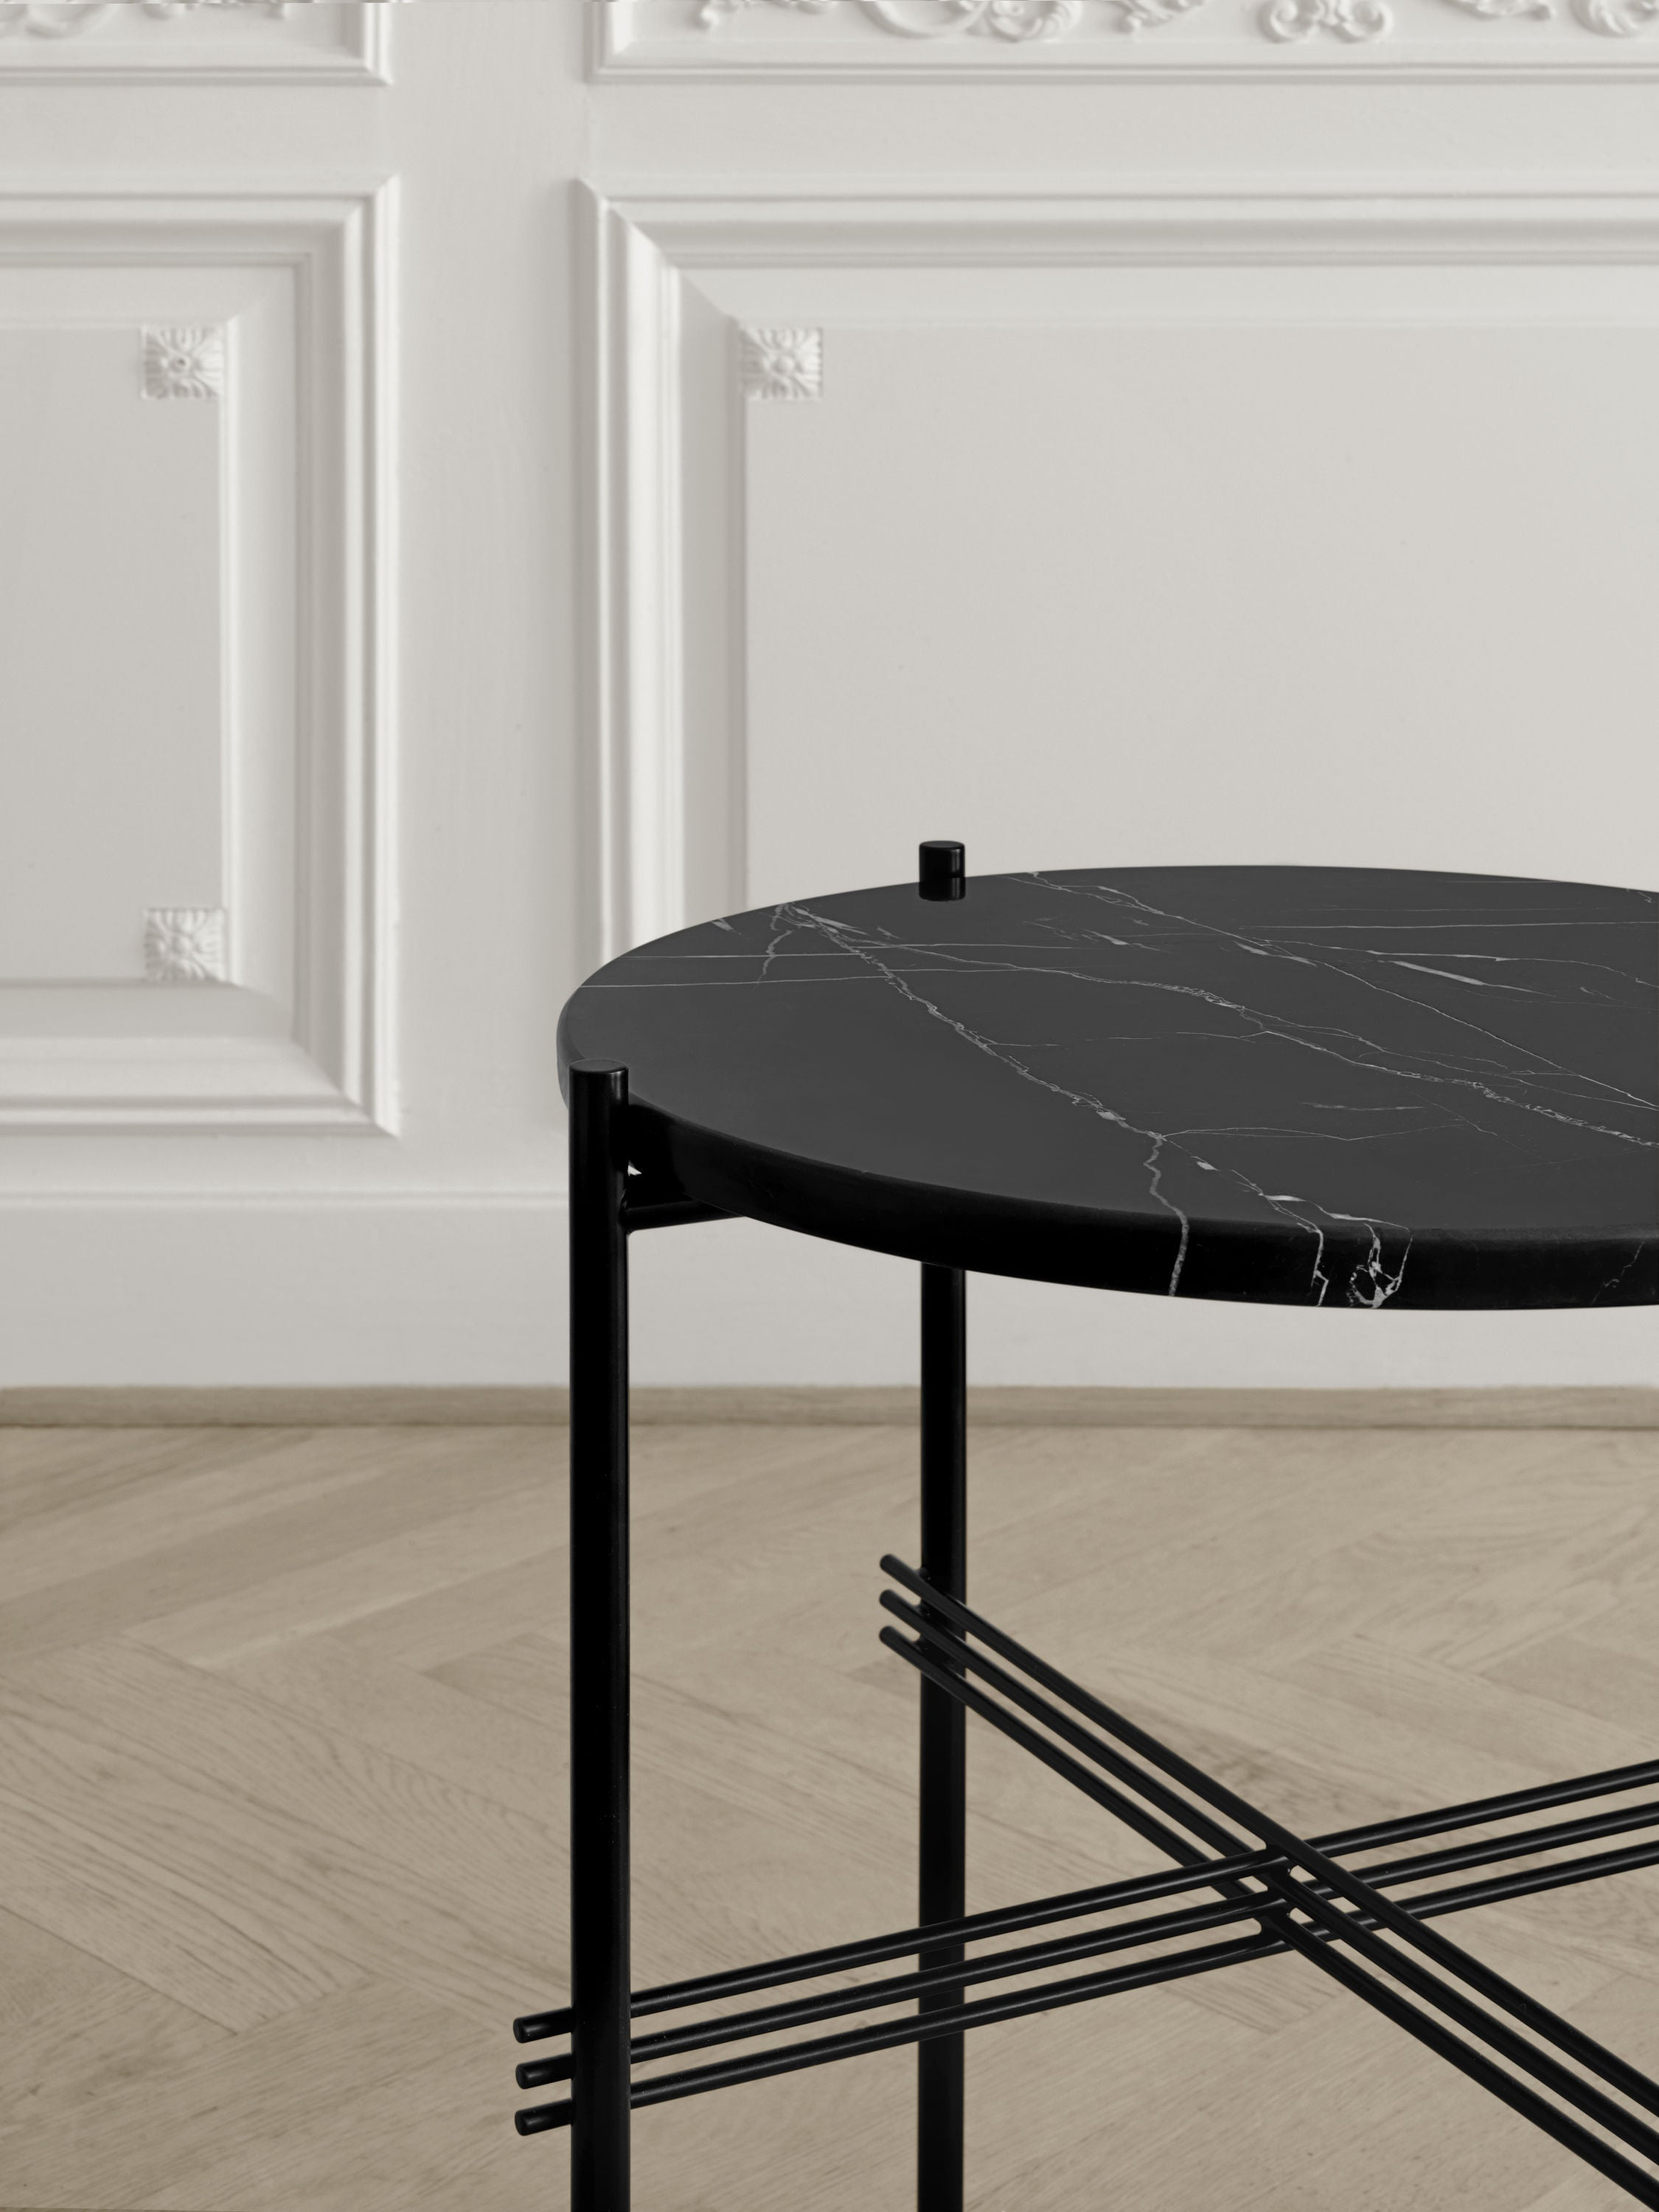 TS Coffee Table - Dia 80 Black base, glass rusty red top fra GUBI